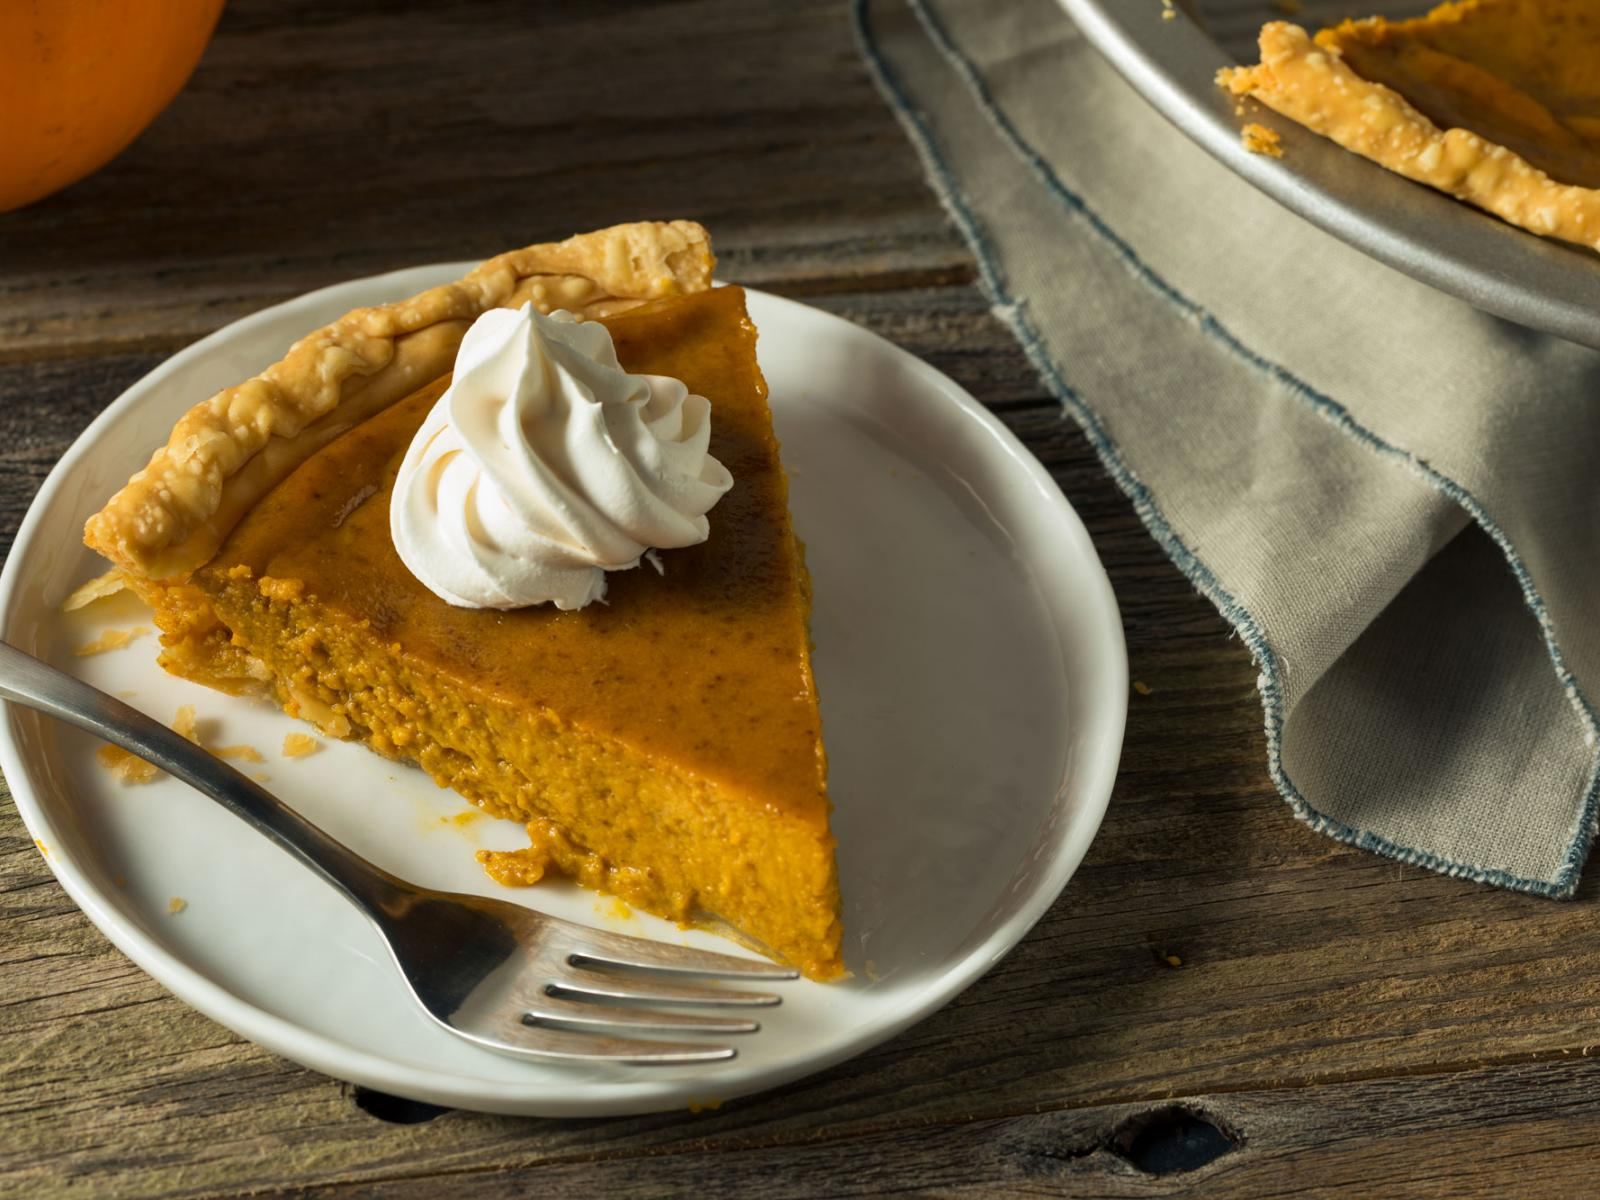 Jennifer's Creamy Pumpkin Pie Recipe